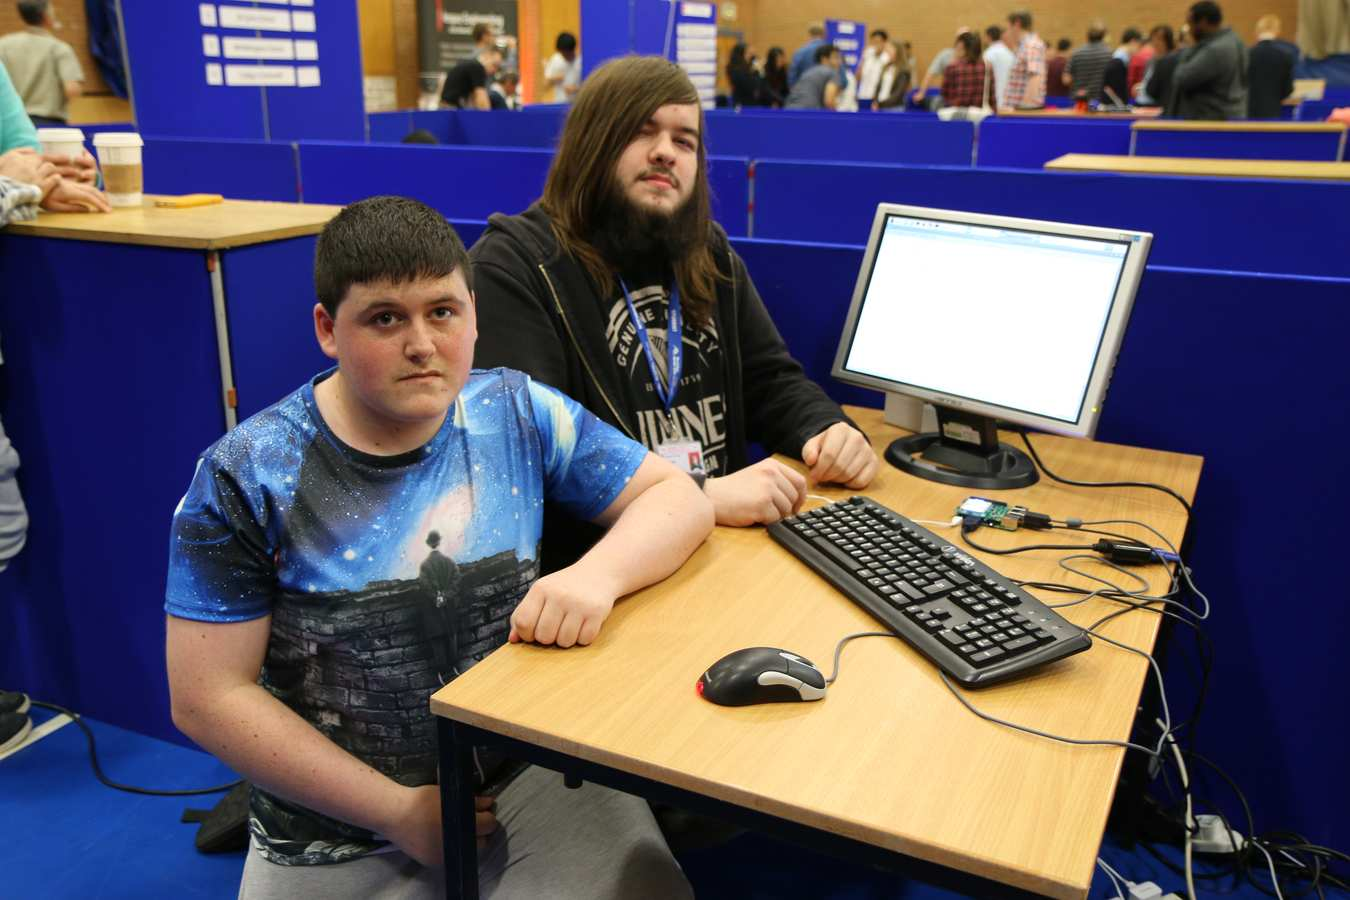 Rob Haynal, 19, and Thomas McPhail, 17, from Merthyr College